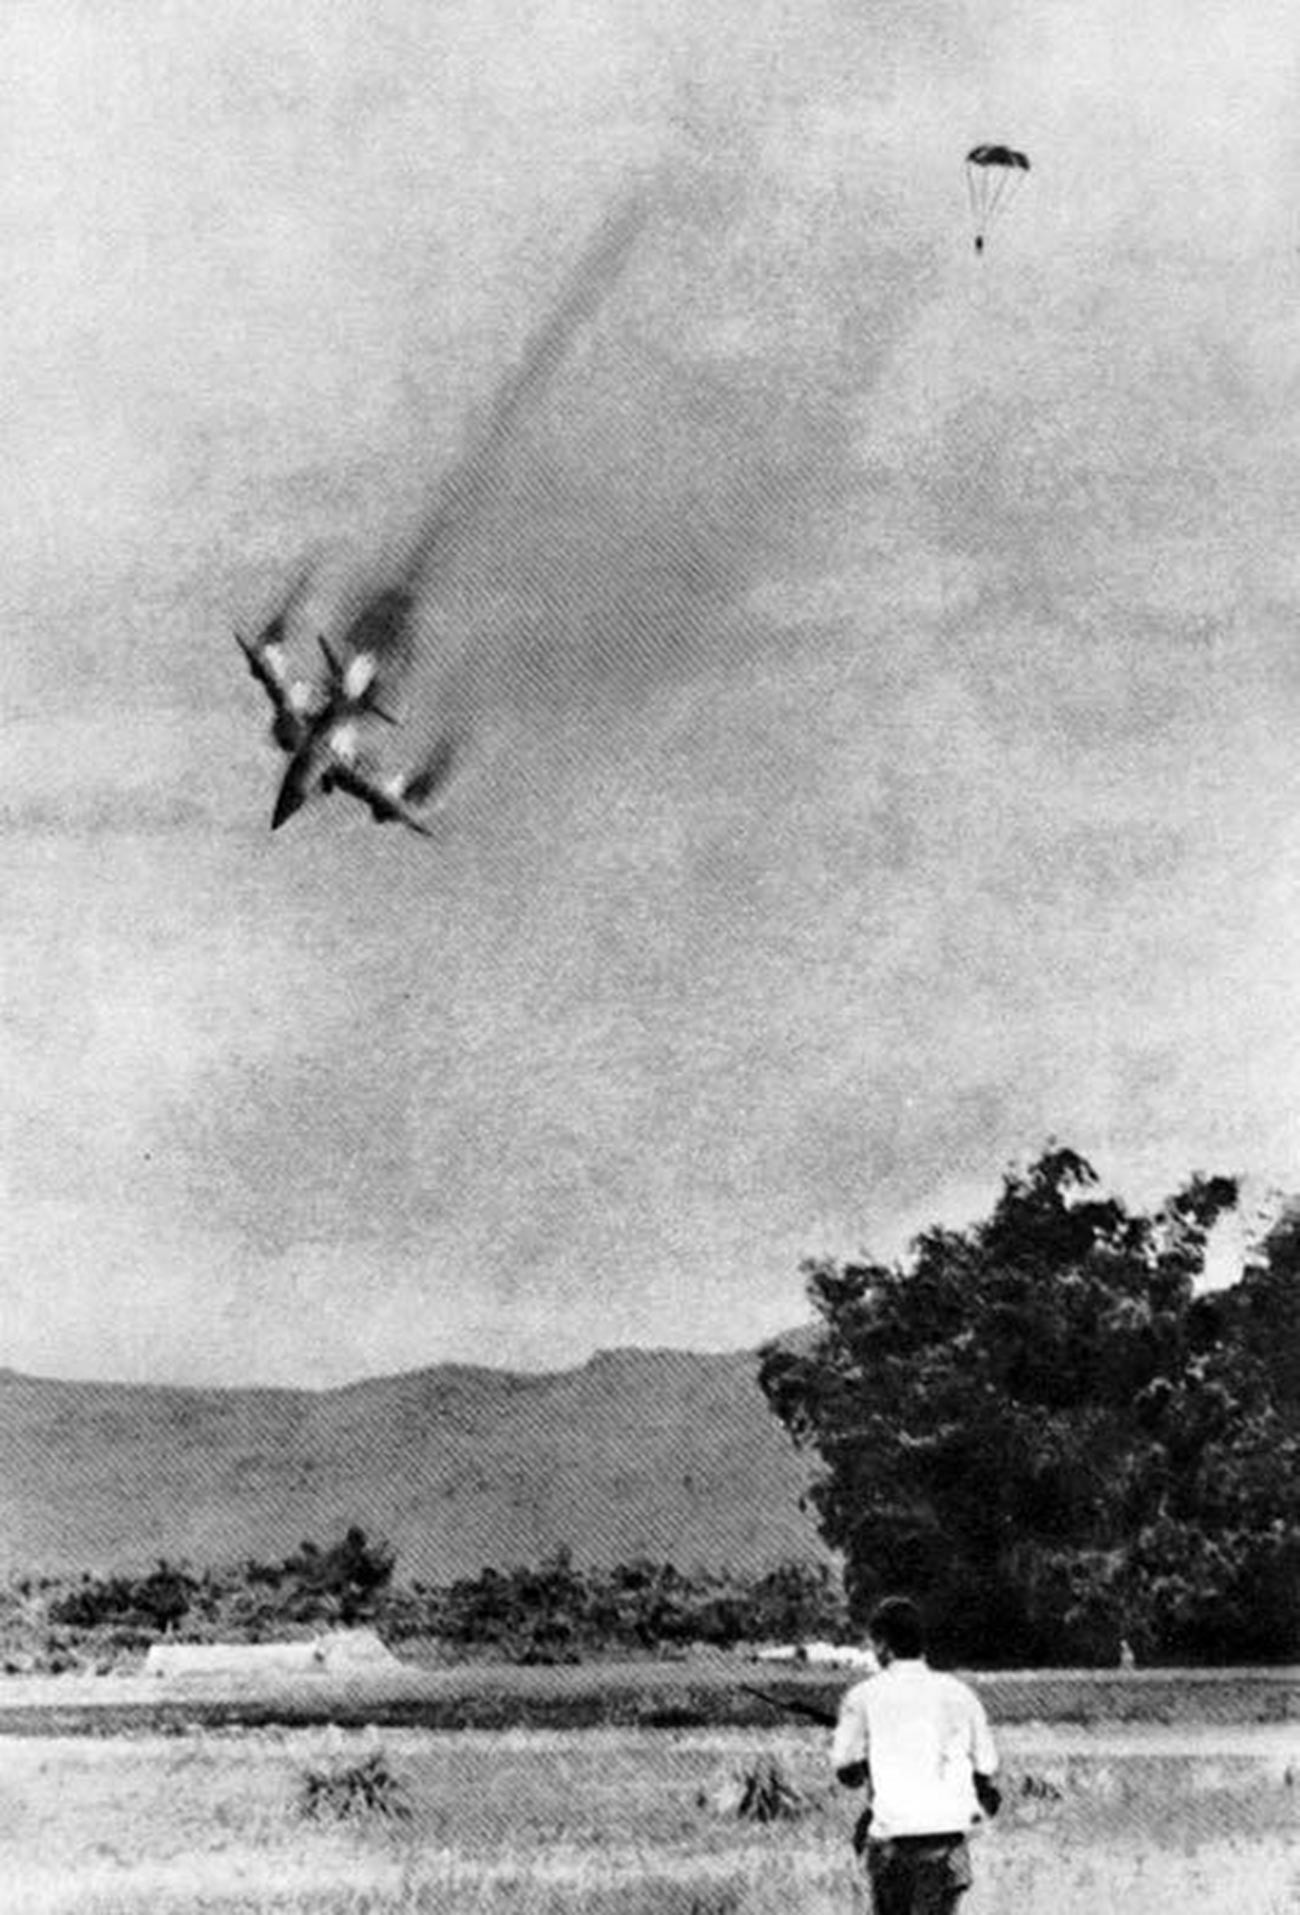 A U.S. military aircraft shot down in Vietnam.